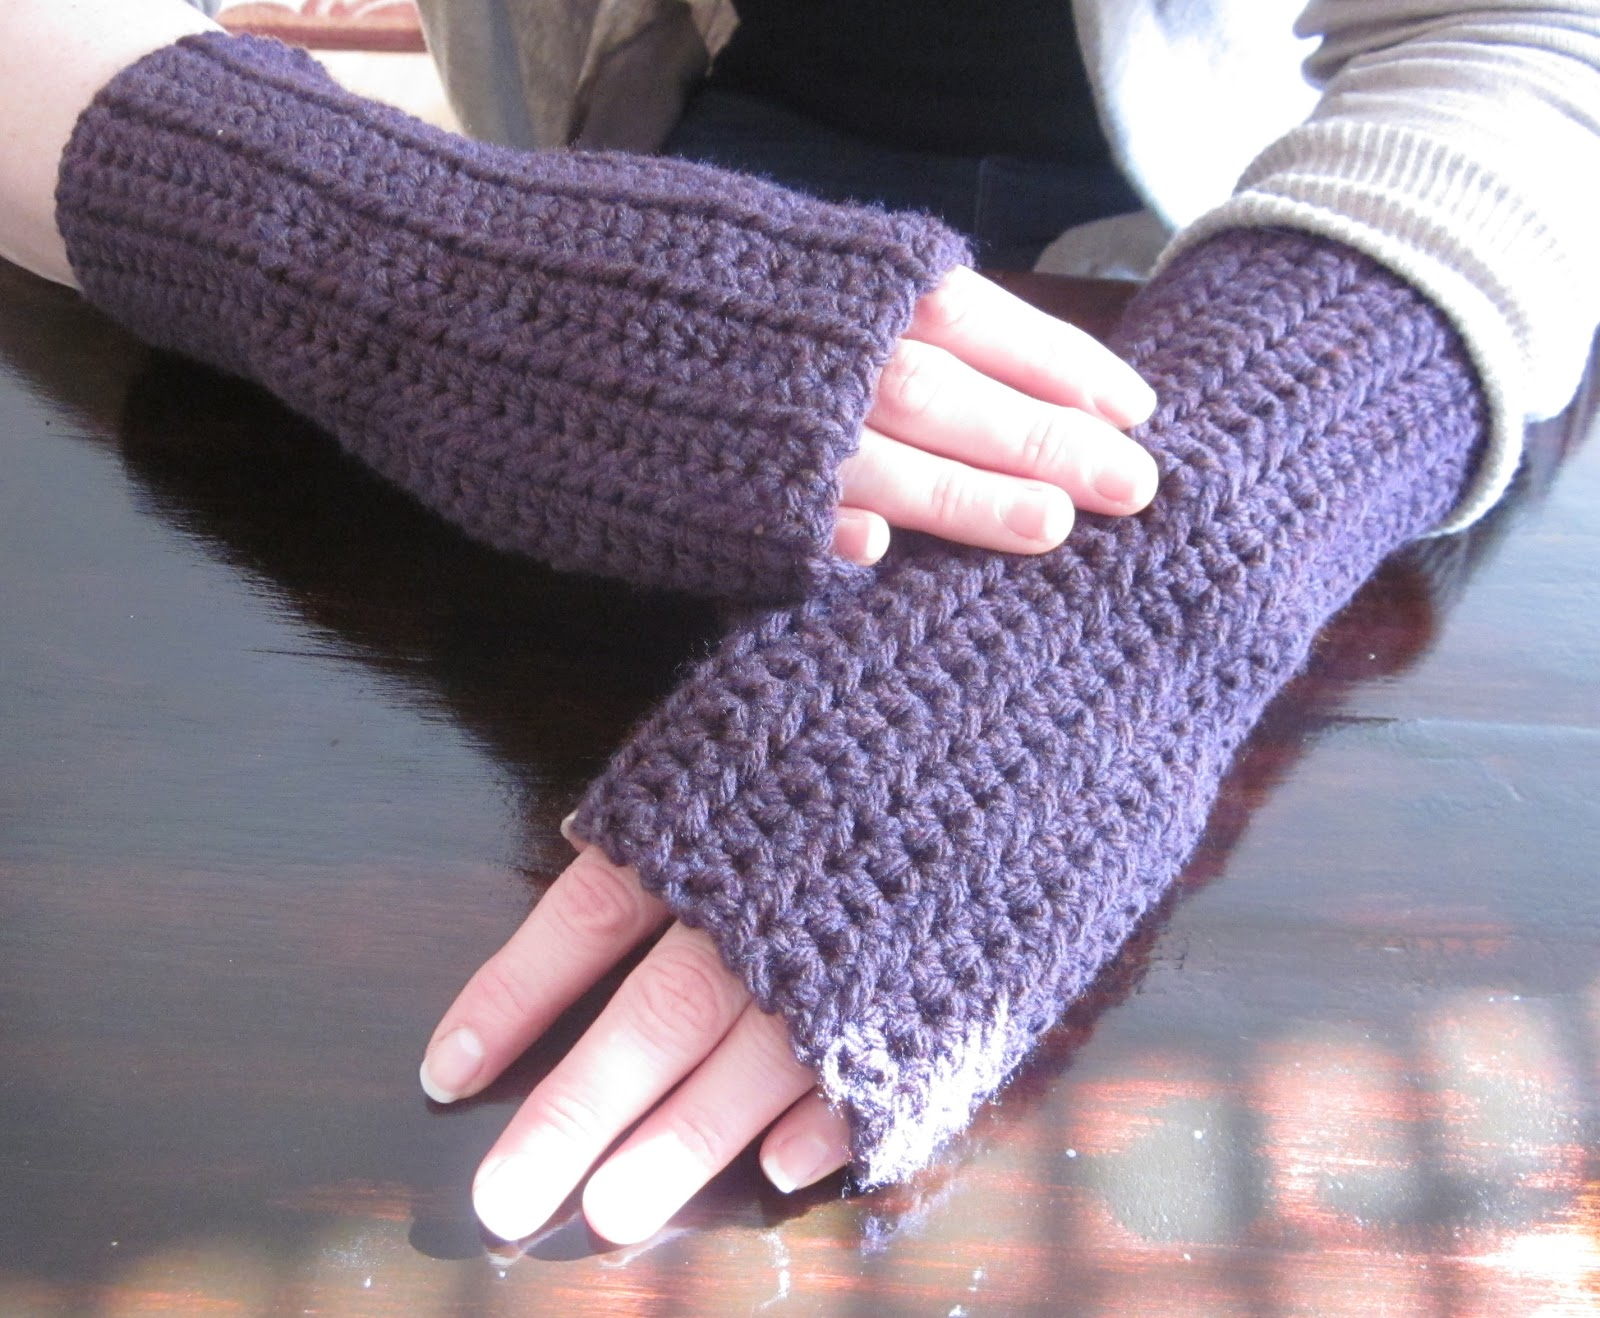 Crochet Fingerless Gloves Picture Tutorial : The Crafty Novice: DIY Crochet: Fingerless Gloves